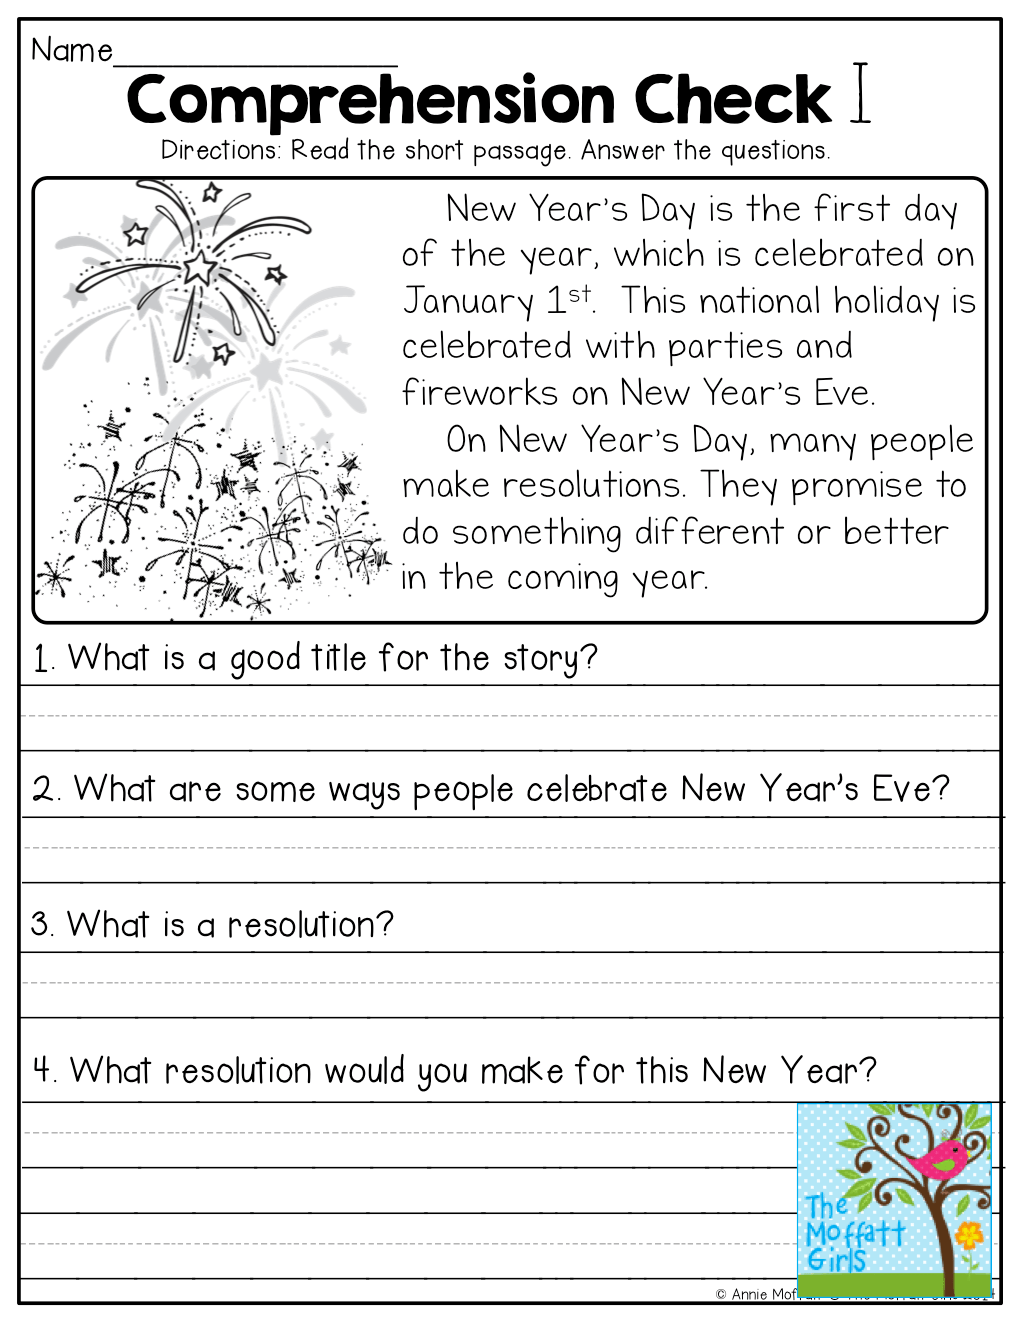 Worksheet Free Reading Comprehension Worksheets For 1st